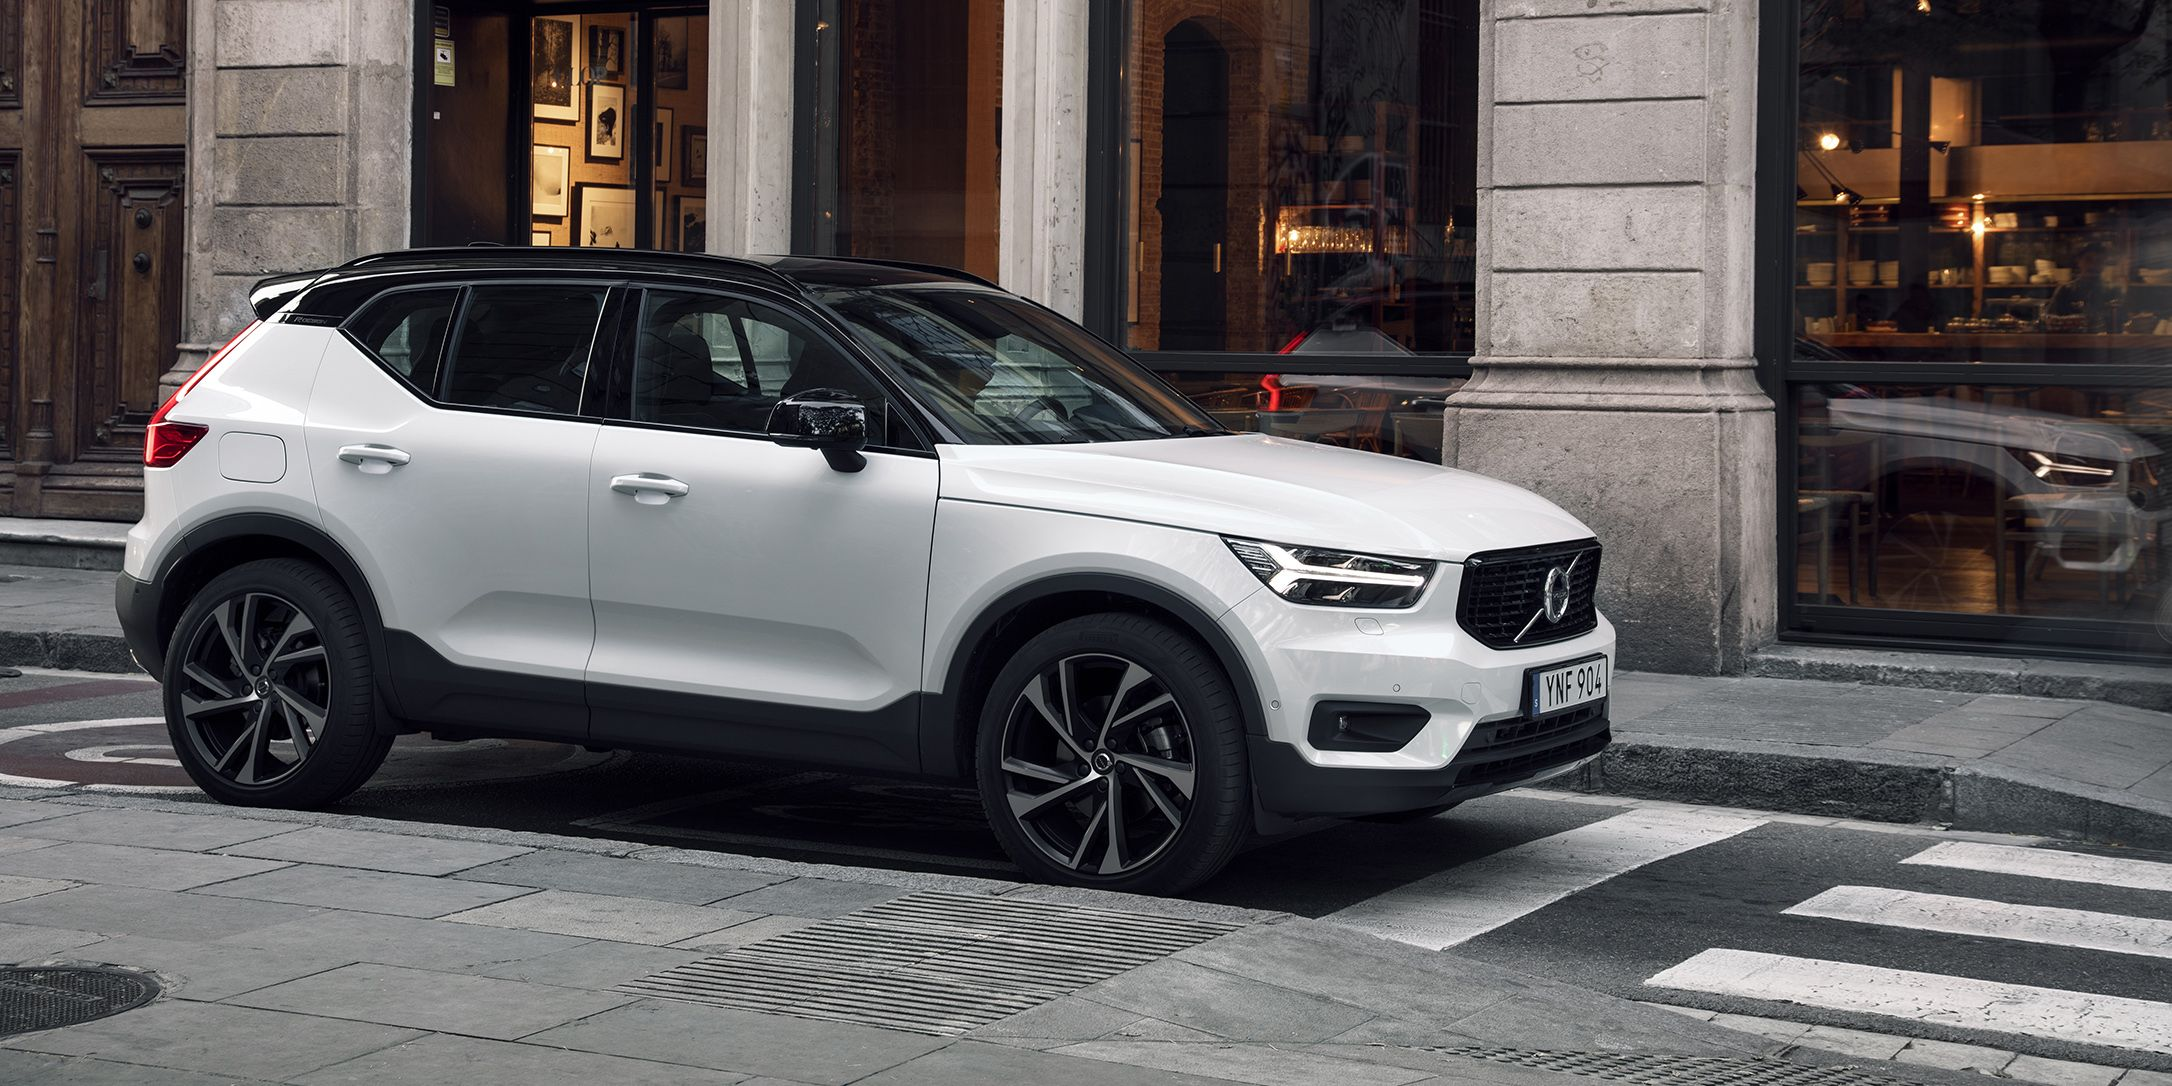 Best 2018 Cars Under 30k >> 2018 Volvo XC40: A Home Run for $600 a Month